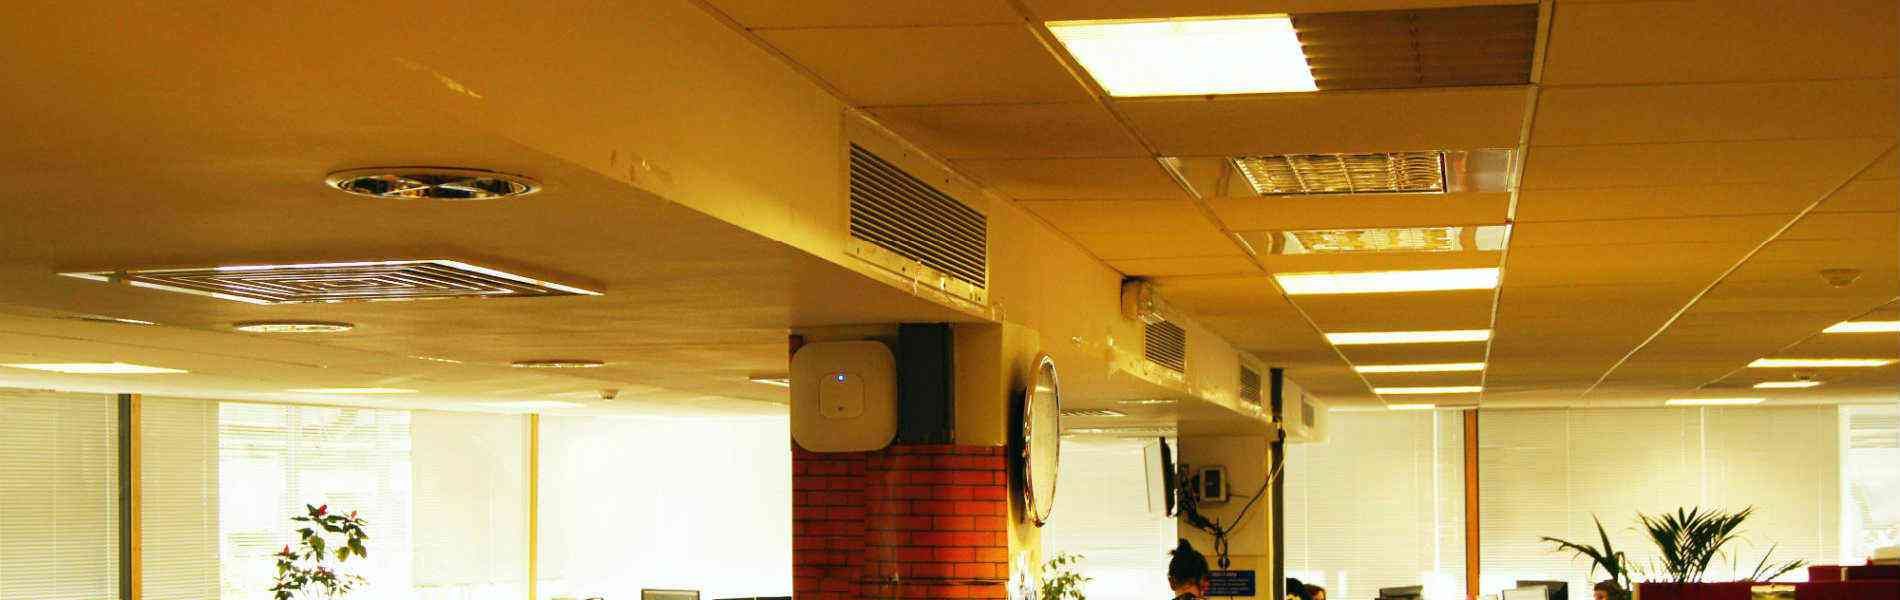 AC REPAIR DUBAI & DUCT FABRICATION